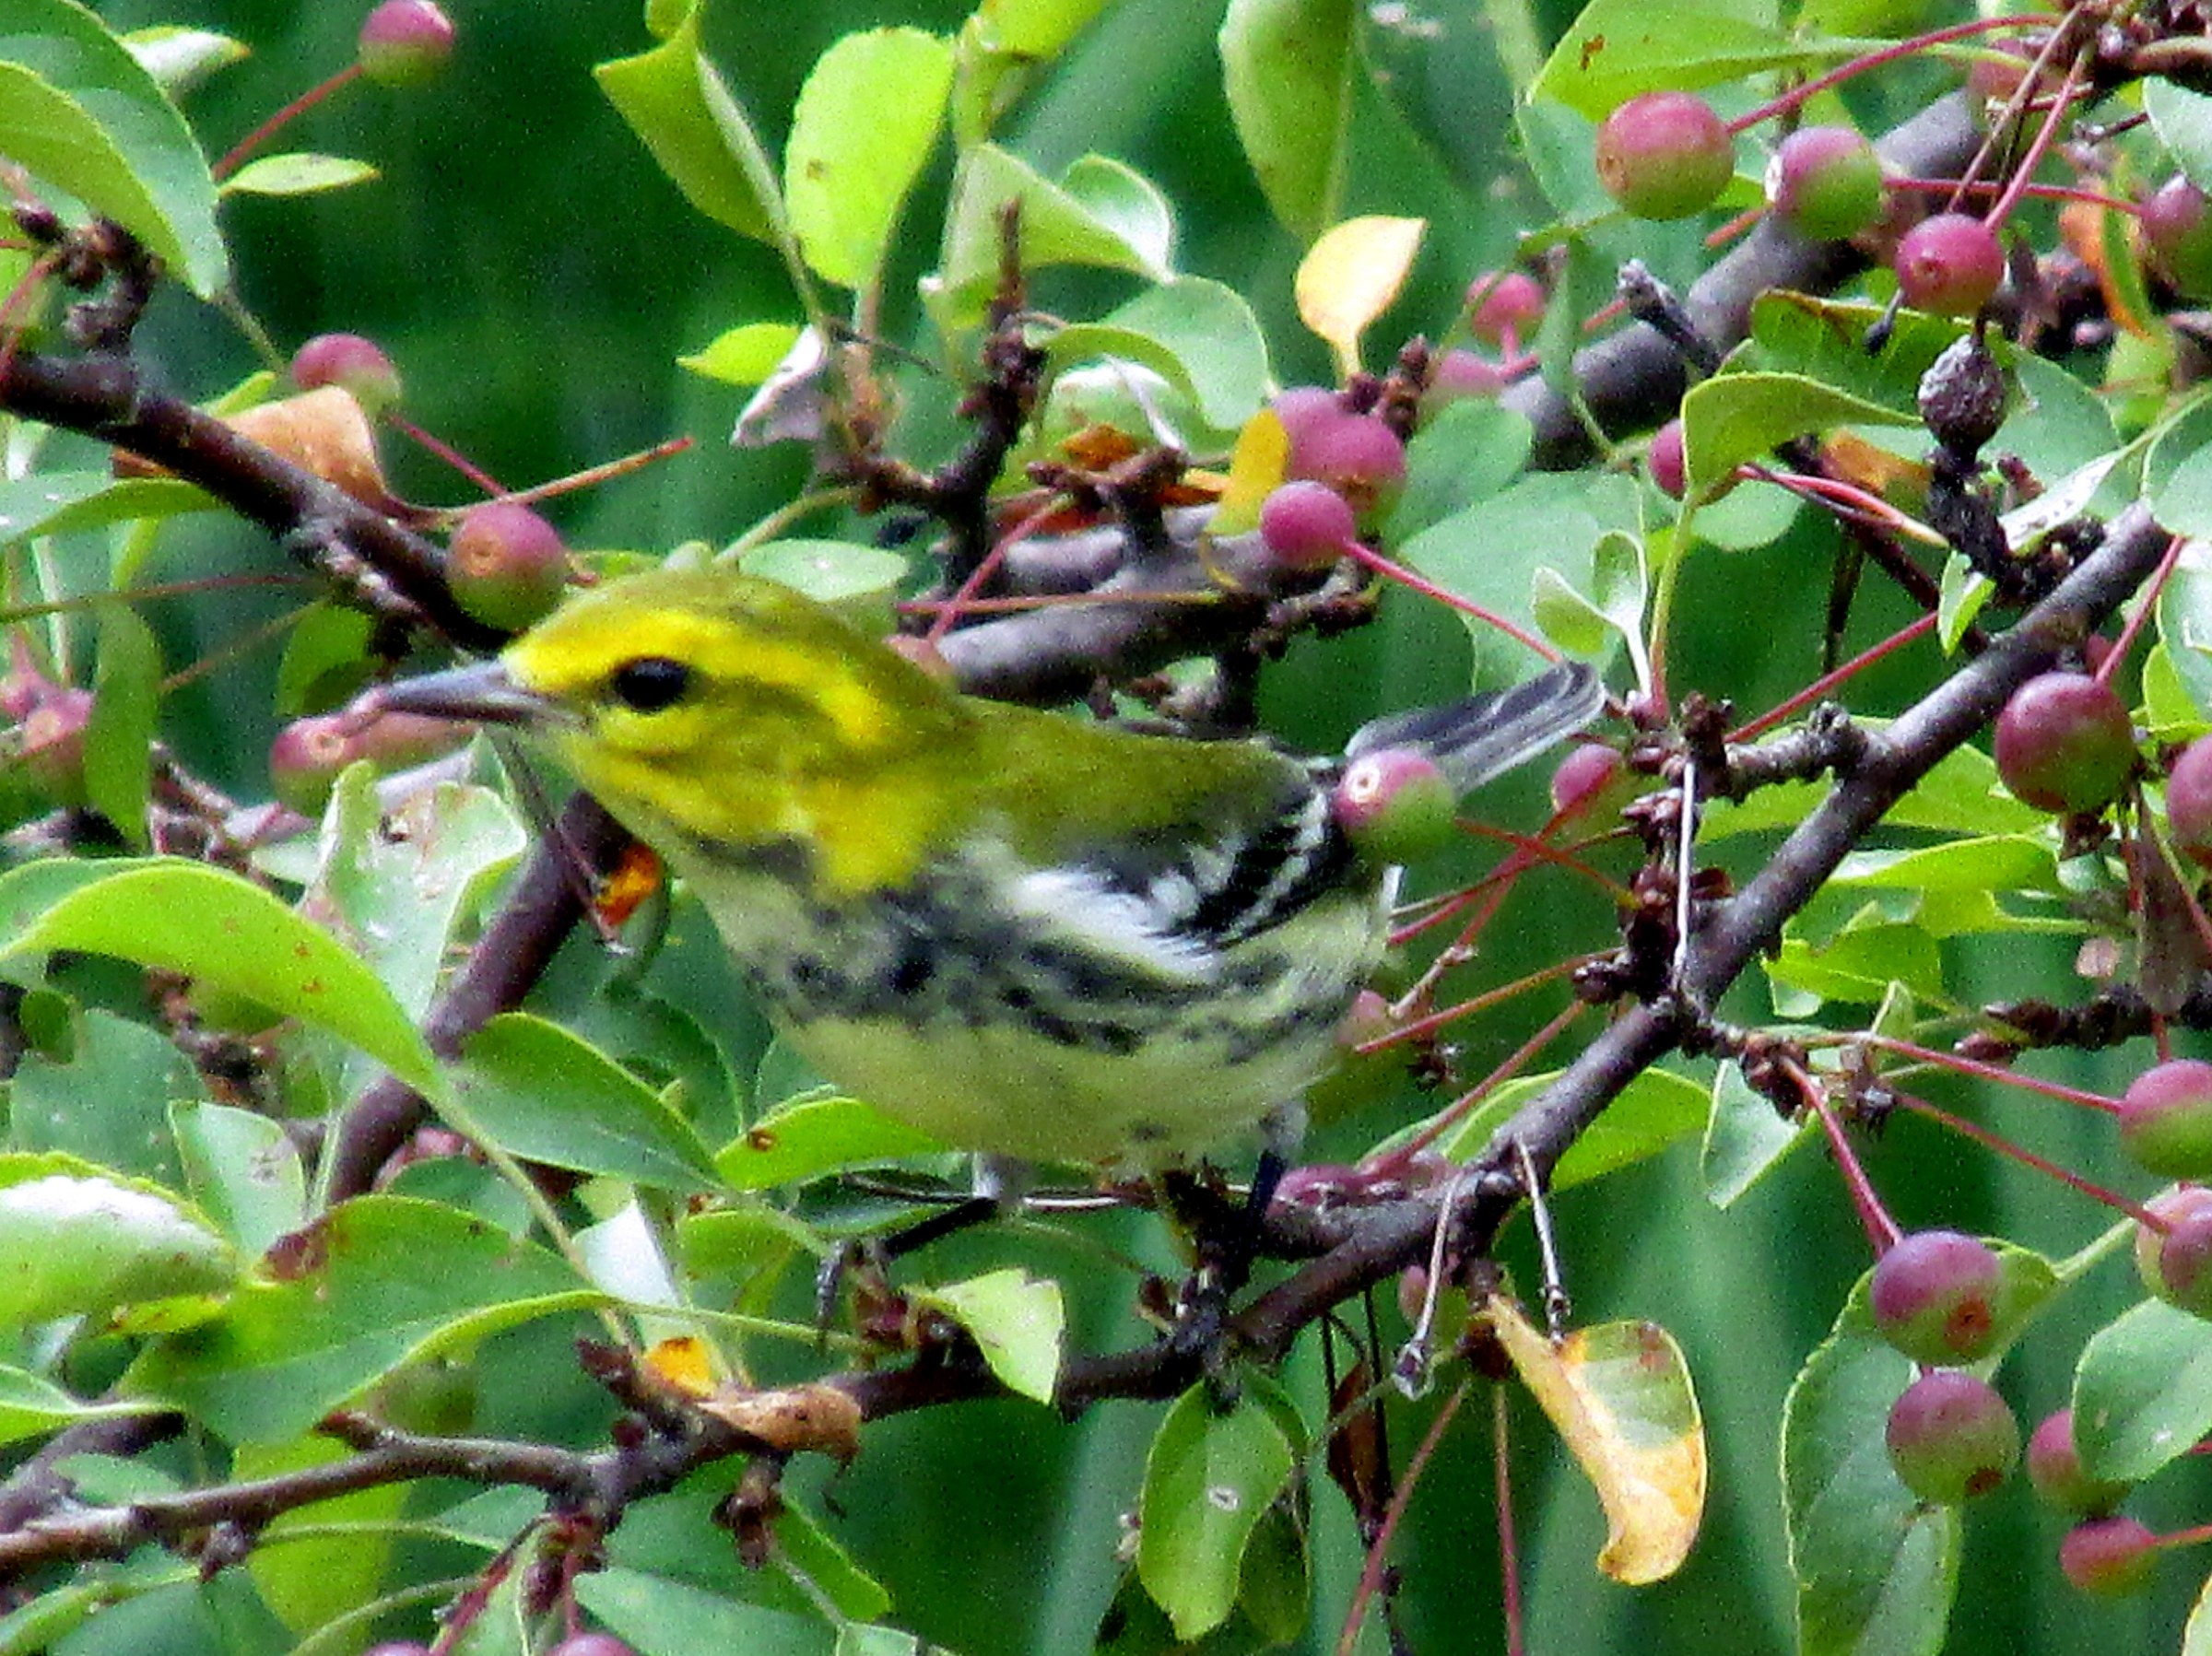 black-throated green warbler in 'Tina' crabapple, 31 Aug 2014